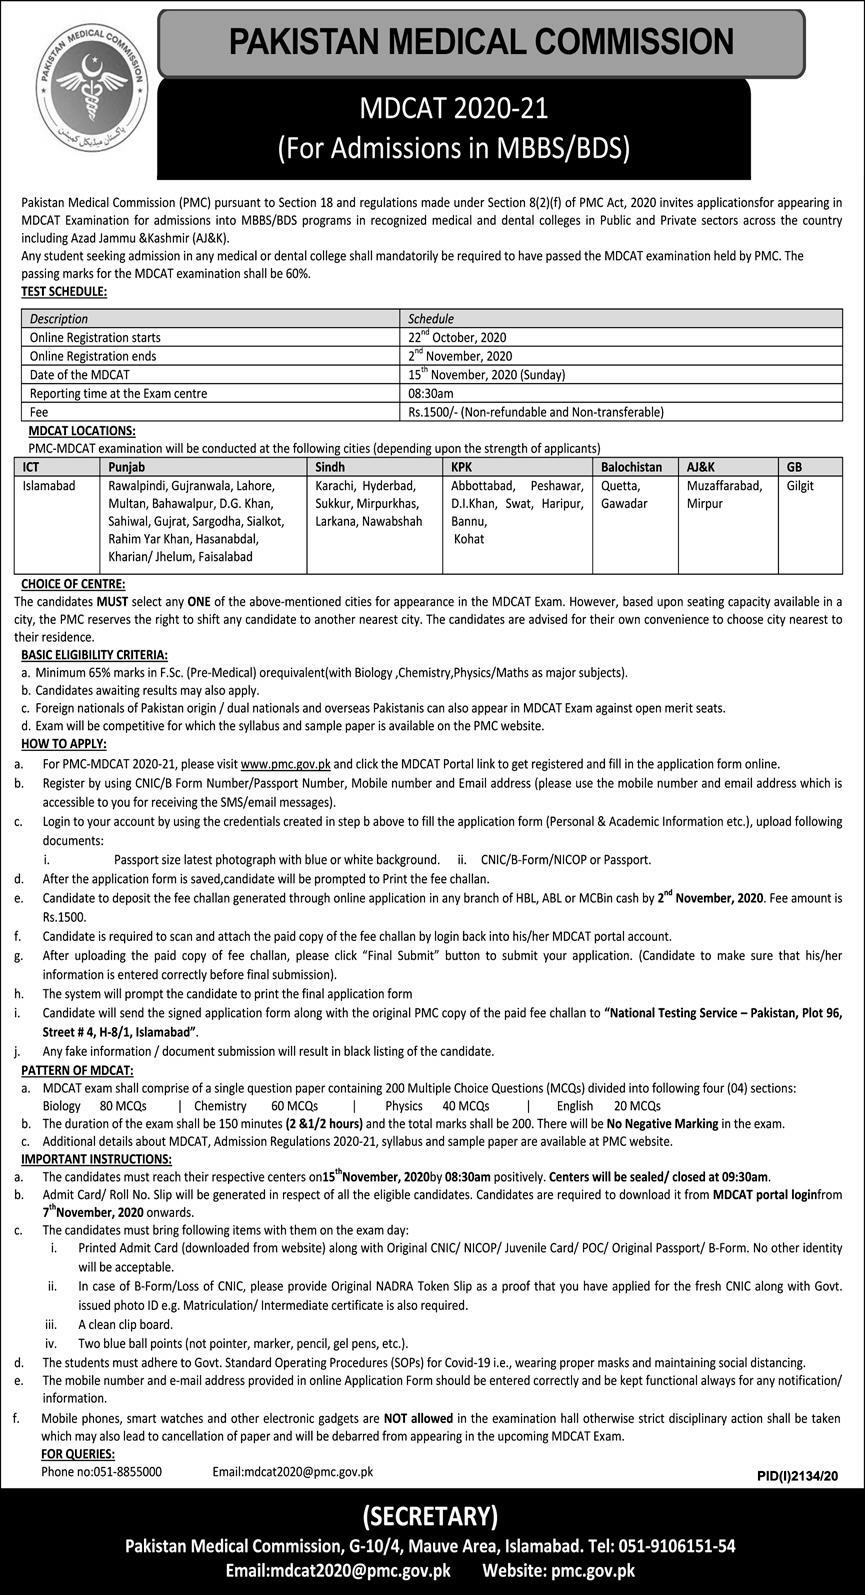 Pakistan Medical Commission MDCAT 2020 for Admission in MBBS & BDS, Form Result